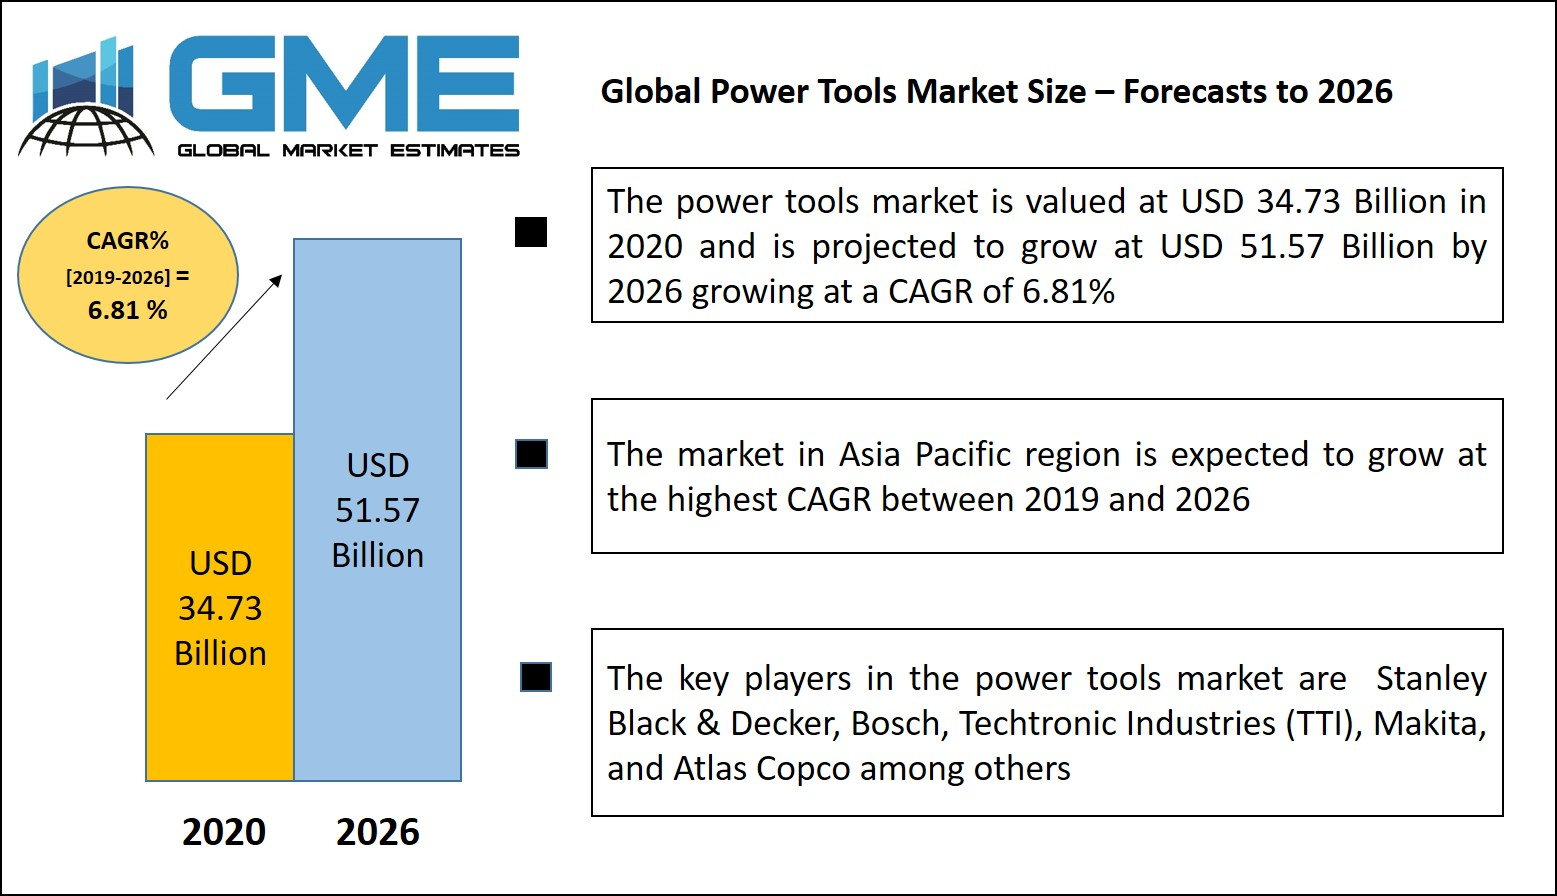 Global Power Tools Market Size – Forecasts to 2026